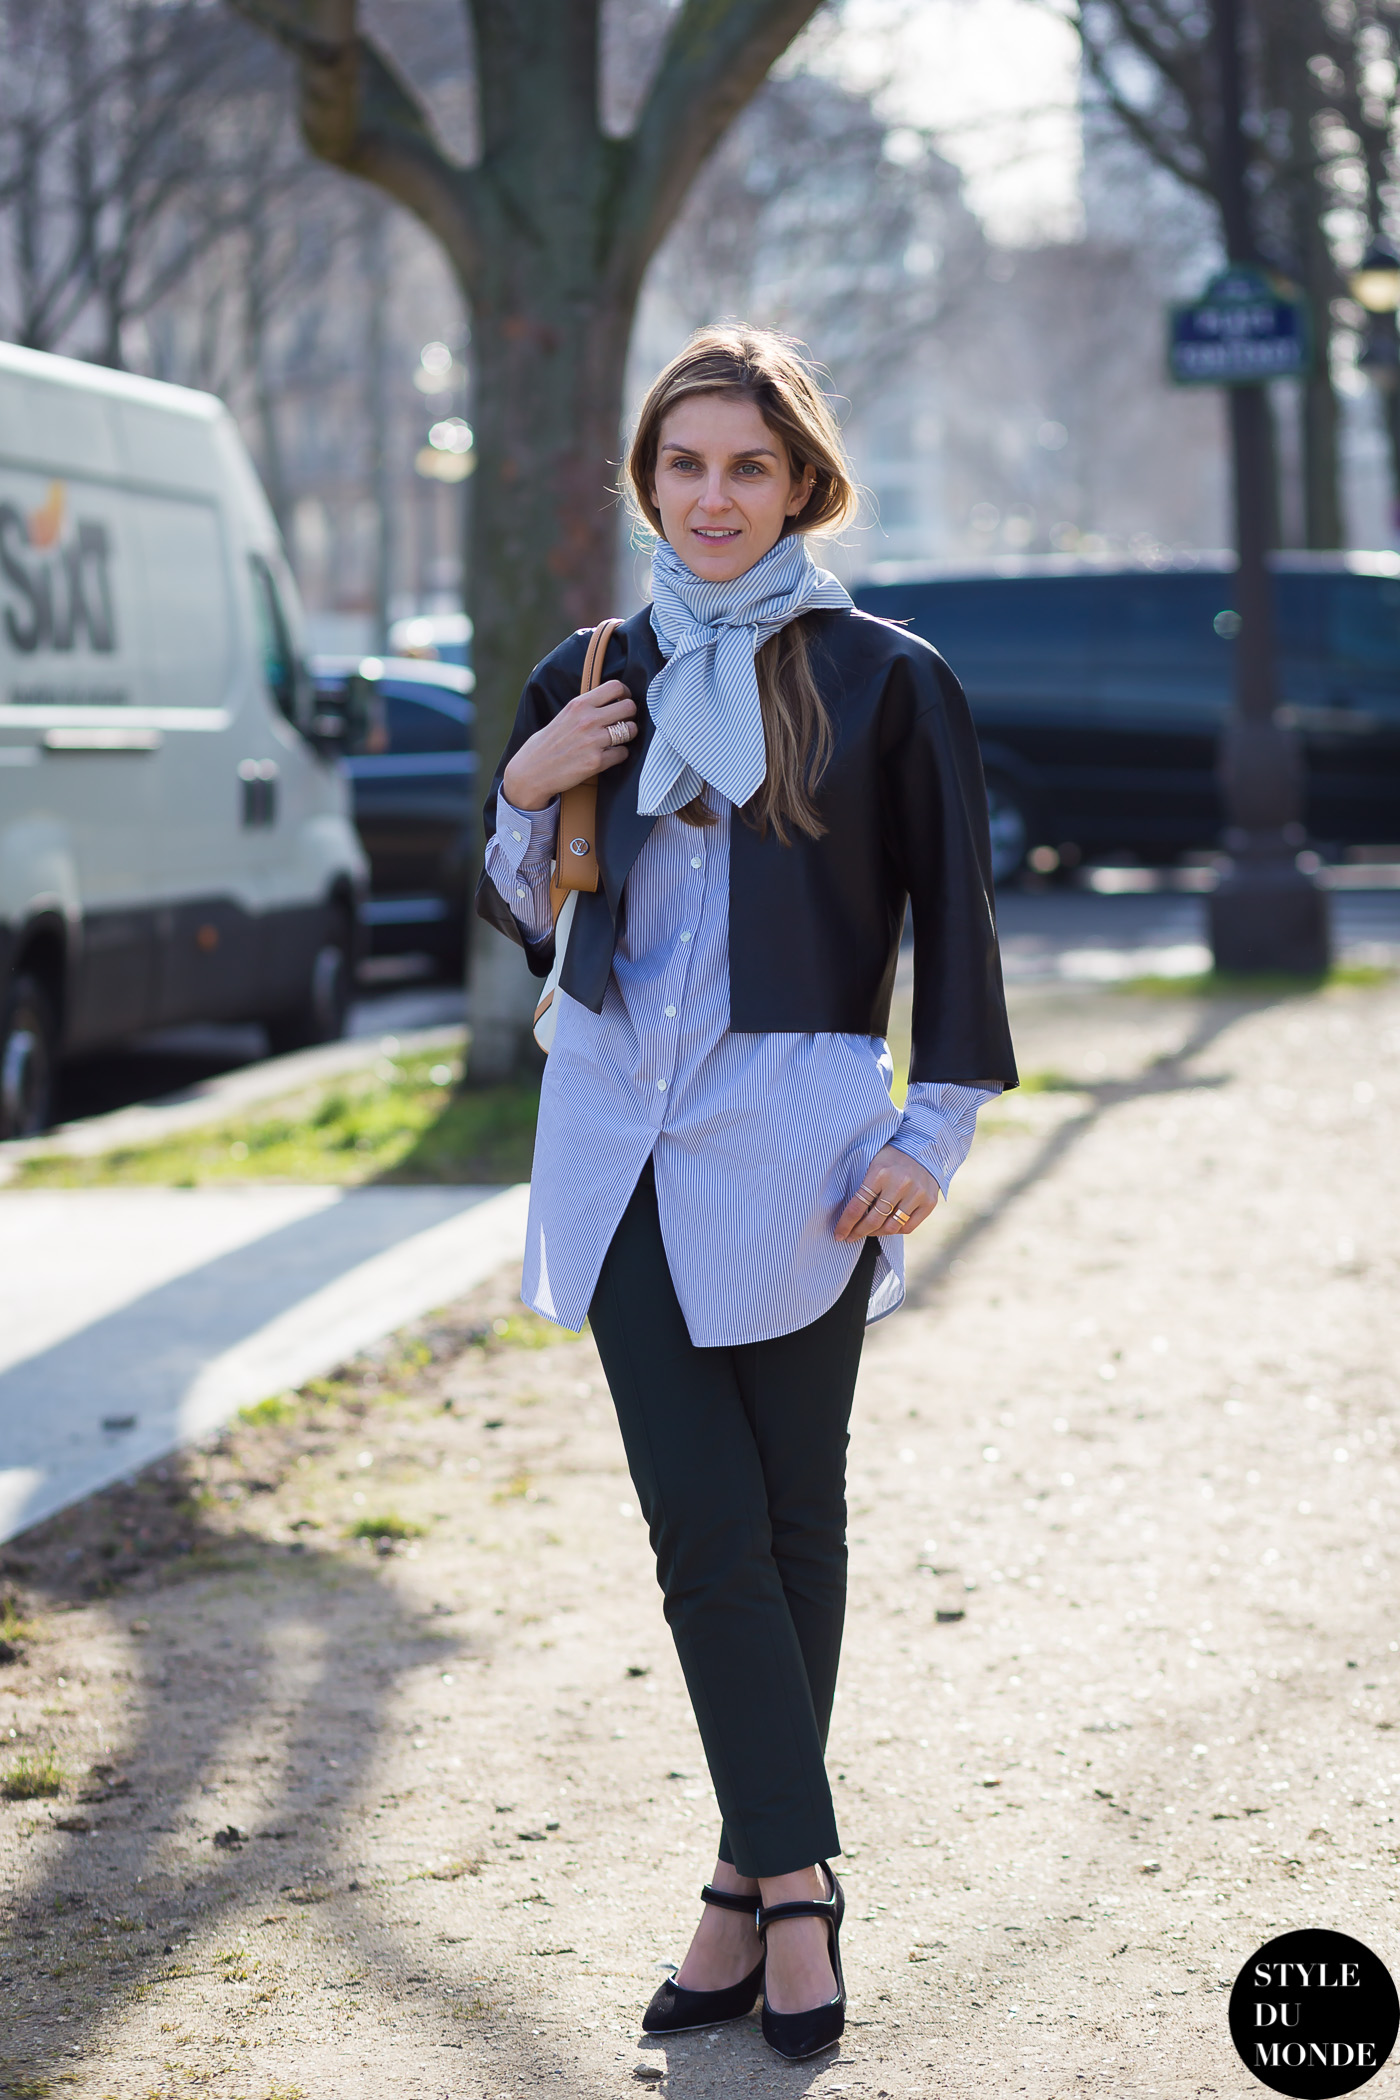 Paris Fashion Week Fw 2015 Street Style Gaia Repossi